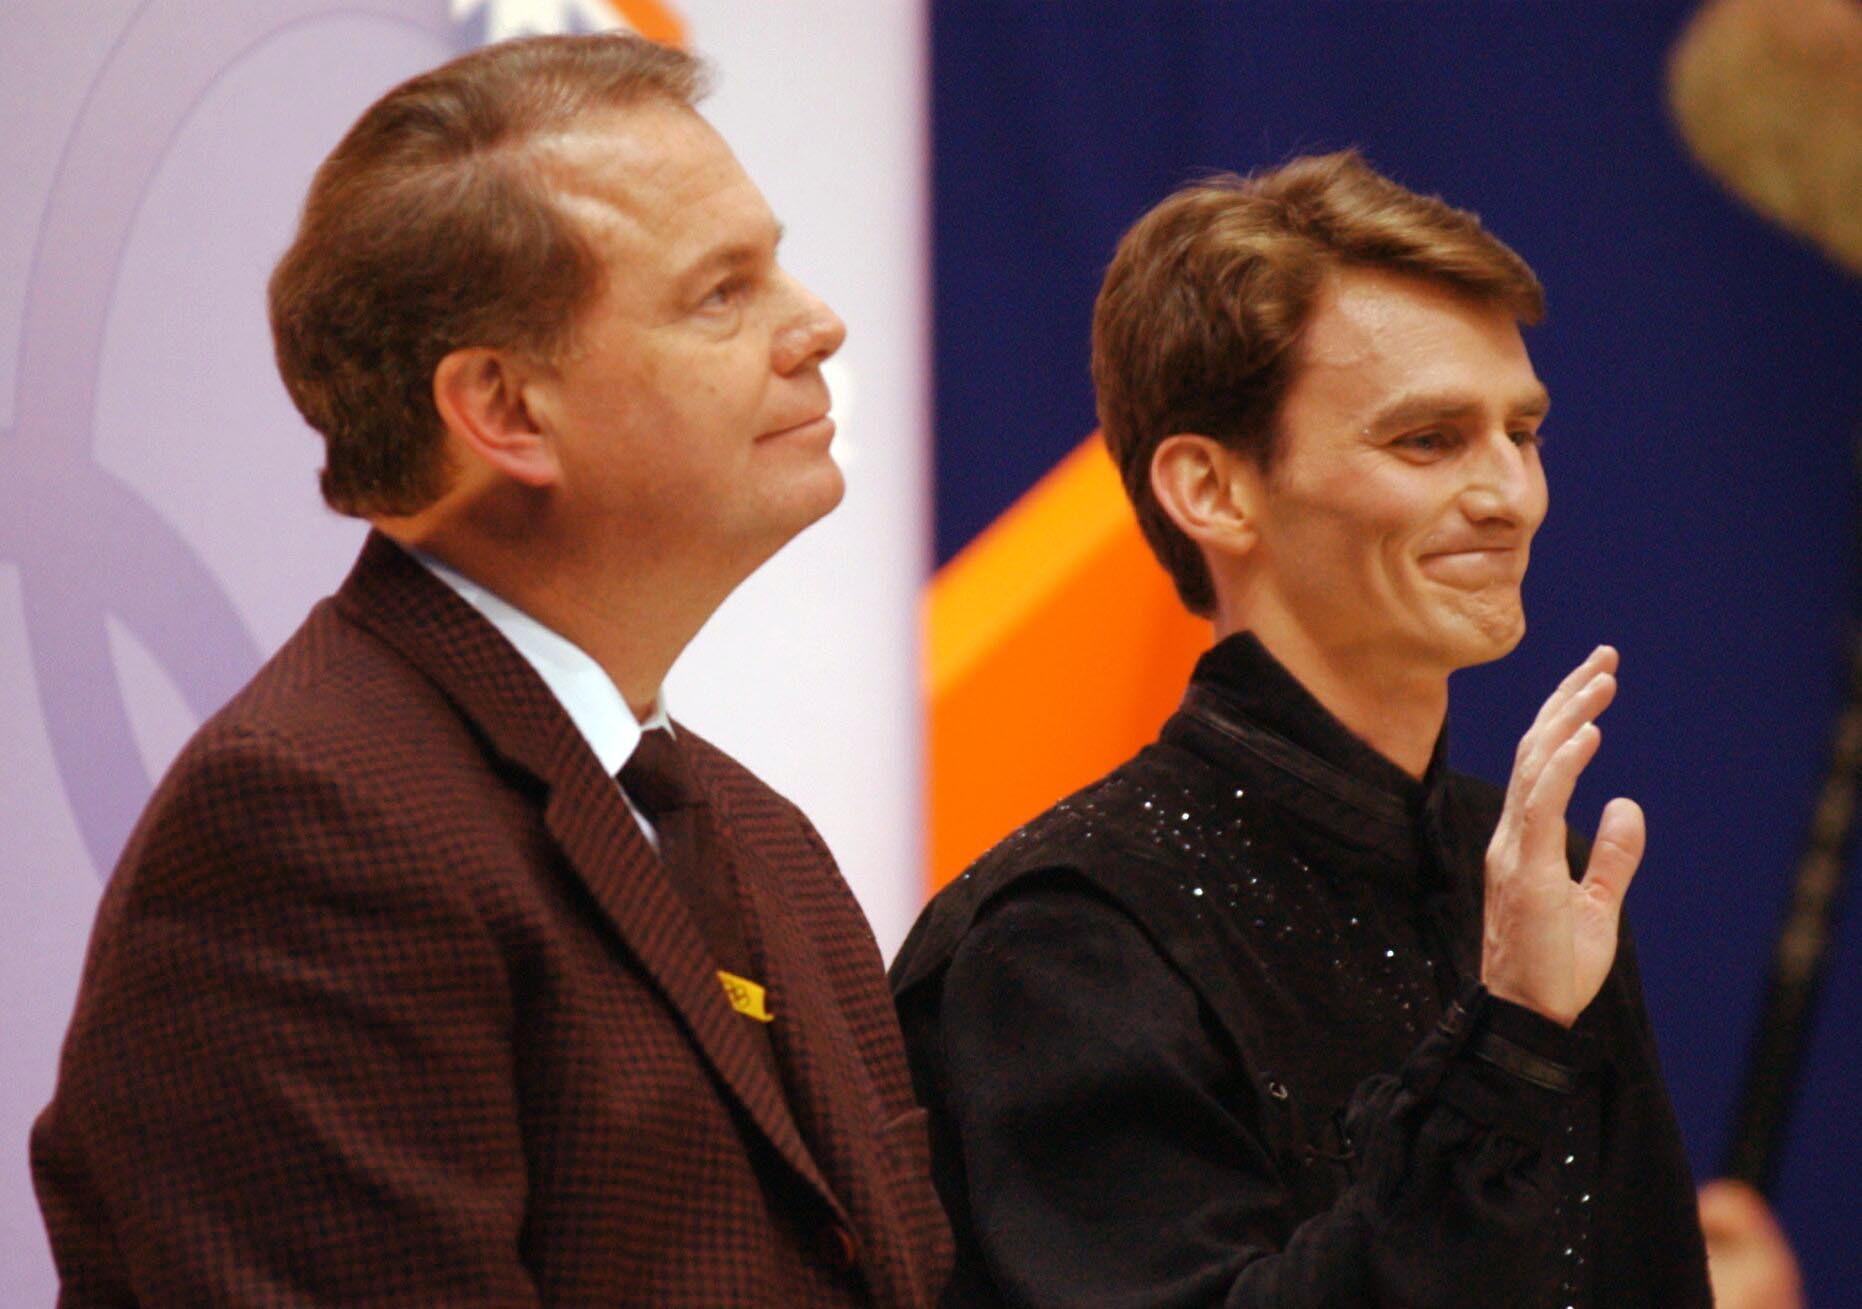 Todd Eldredge, right, also worked with Richard Callaghan, including at the 2002 Winter Olympics in Salt Lake City ©Getty Images